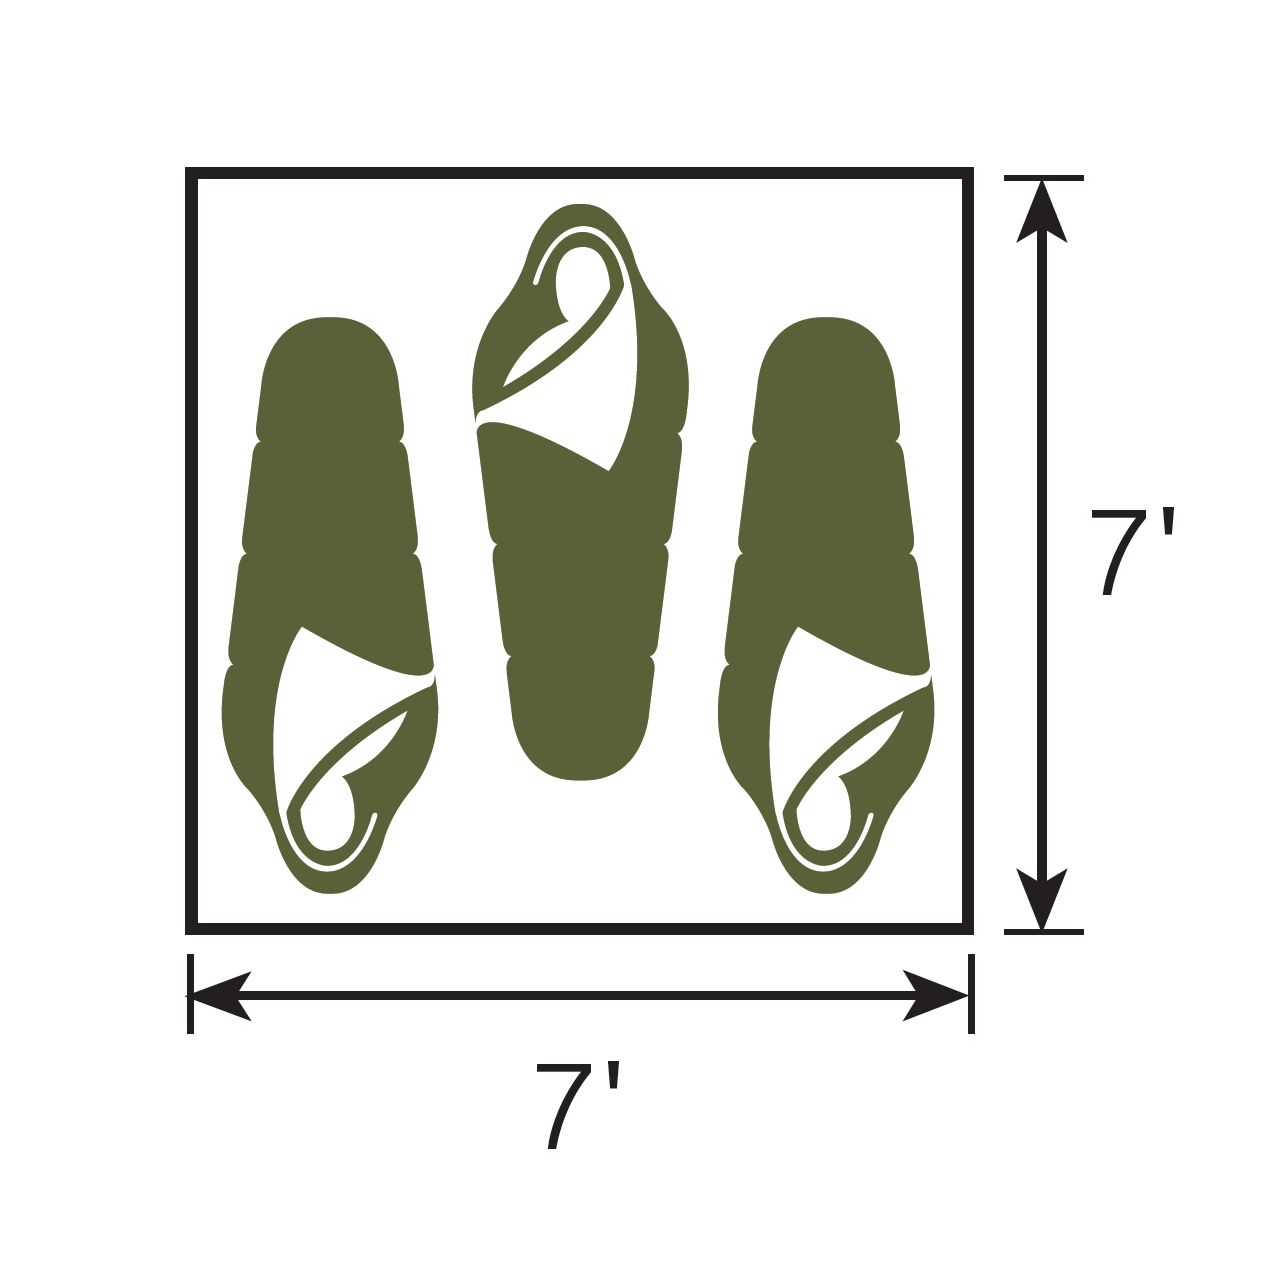 Diagram of the floor sleeping plan for the Wenzel Ridgeline 3 tent with people in sleeping bags illustrating how to sleep three people